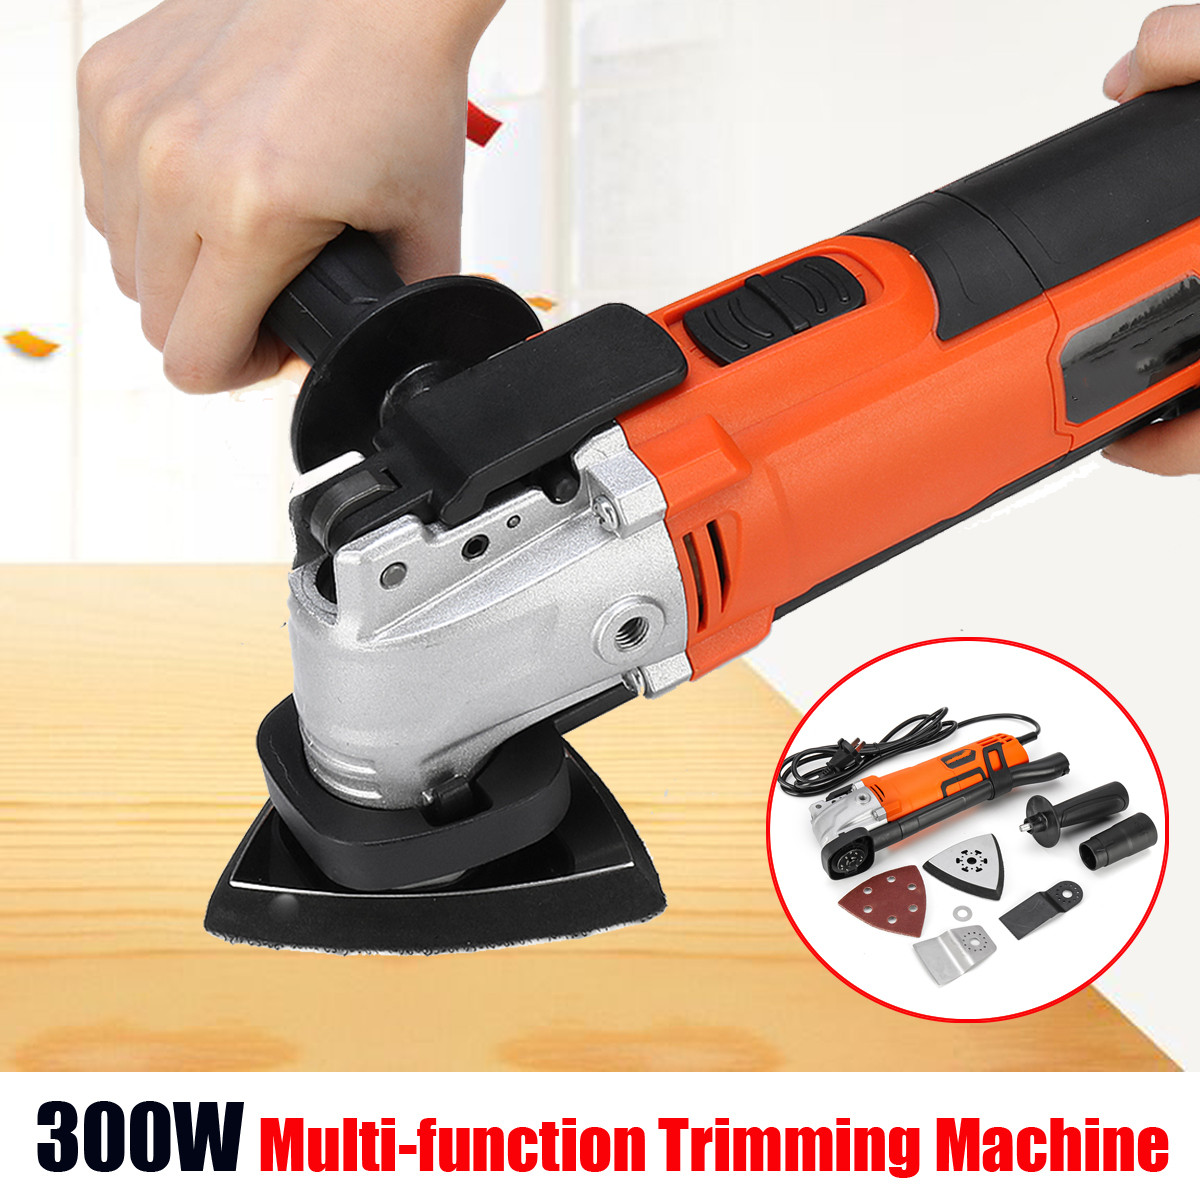 220V300W Variable 6Speed Electric Multifunction Oscillating Tool Kit Multi-Tool Power Tool Electric Grinder Trimmer Saw Accessor220V300W Variable 6Speed Electric Multifunction Oscillating Tool Kit Multi-Tool Power Tool Electric Grinder Trimmer Saw Accessor